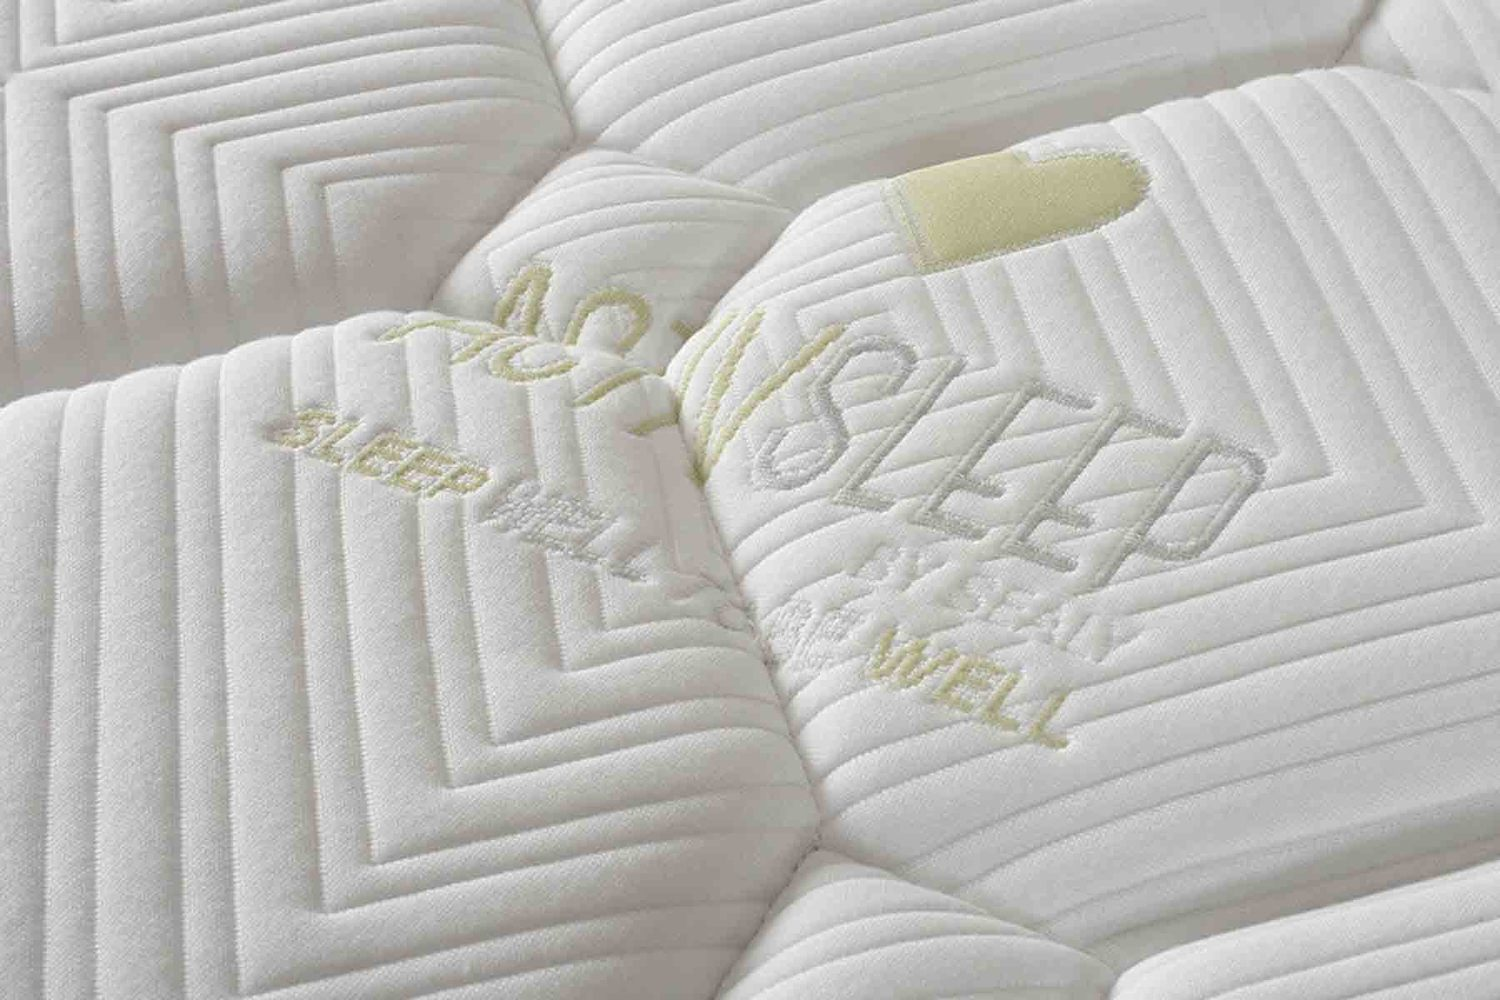 Sealy Activsleep Geltex 2800 Eurotop Mattress